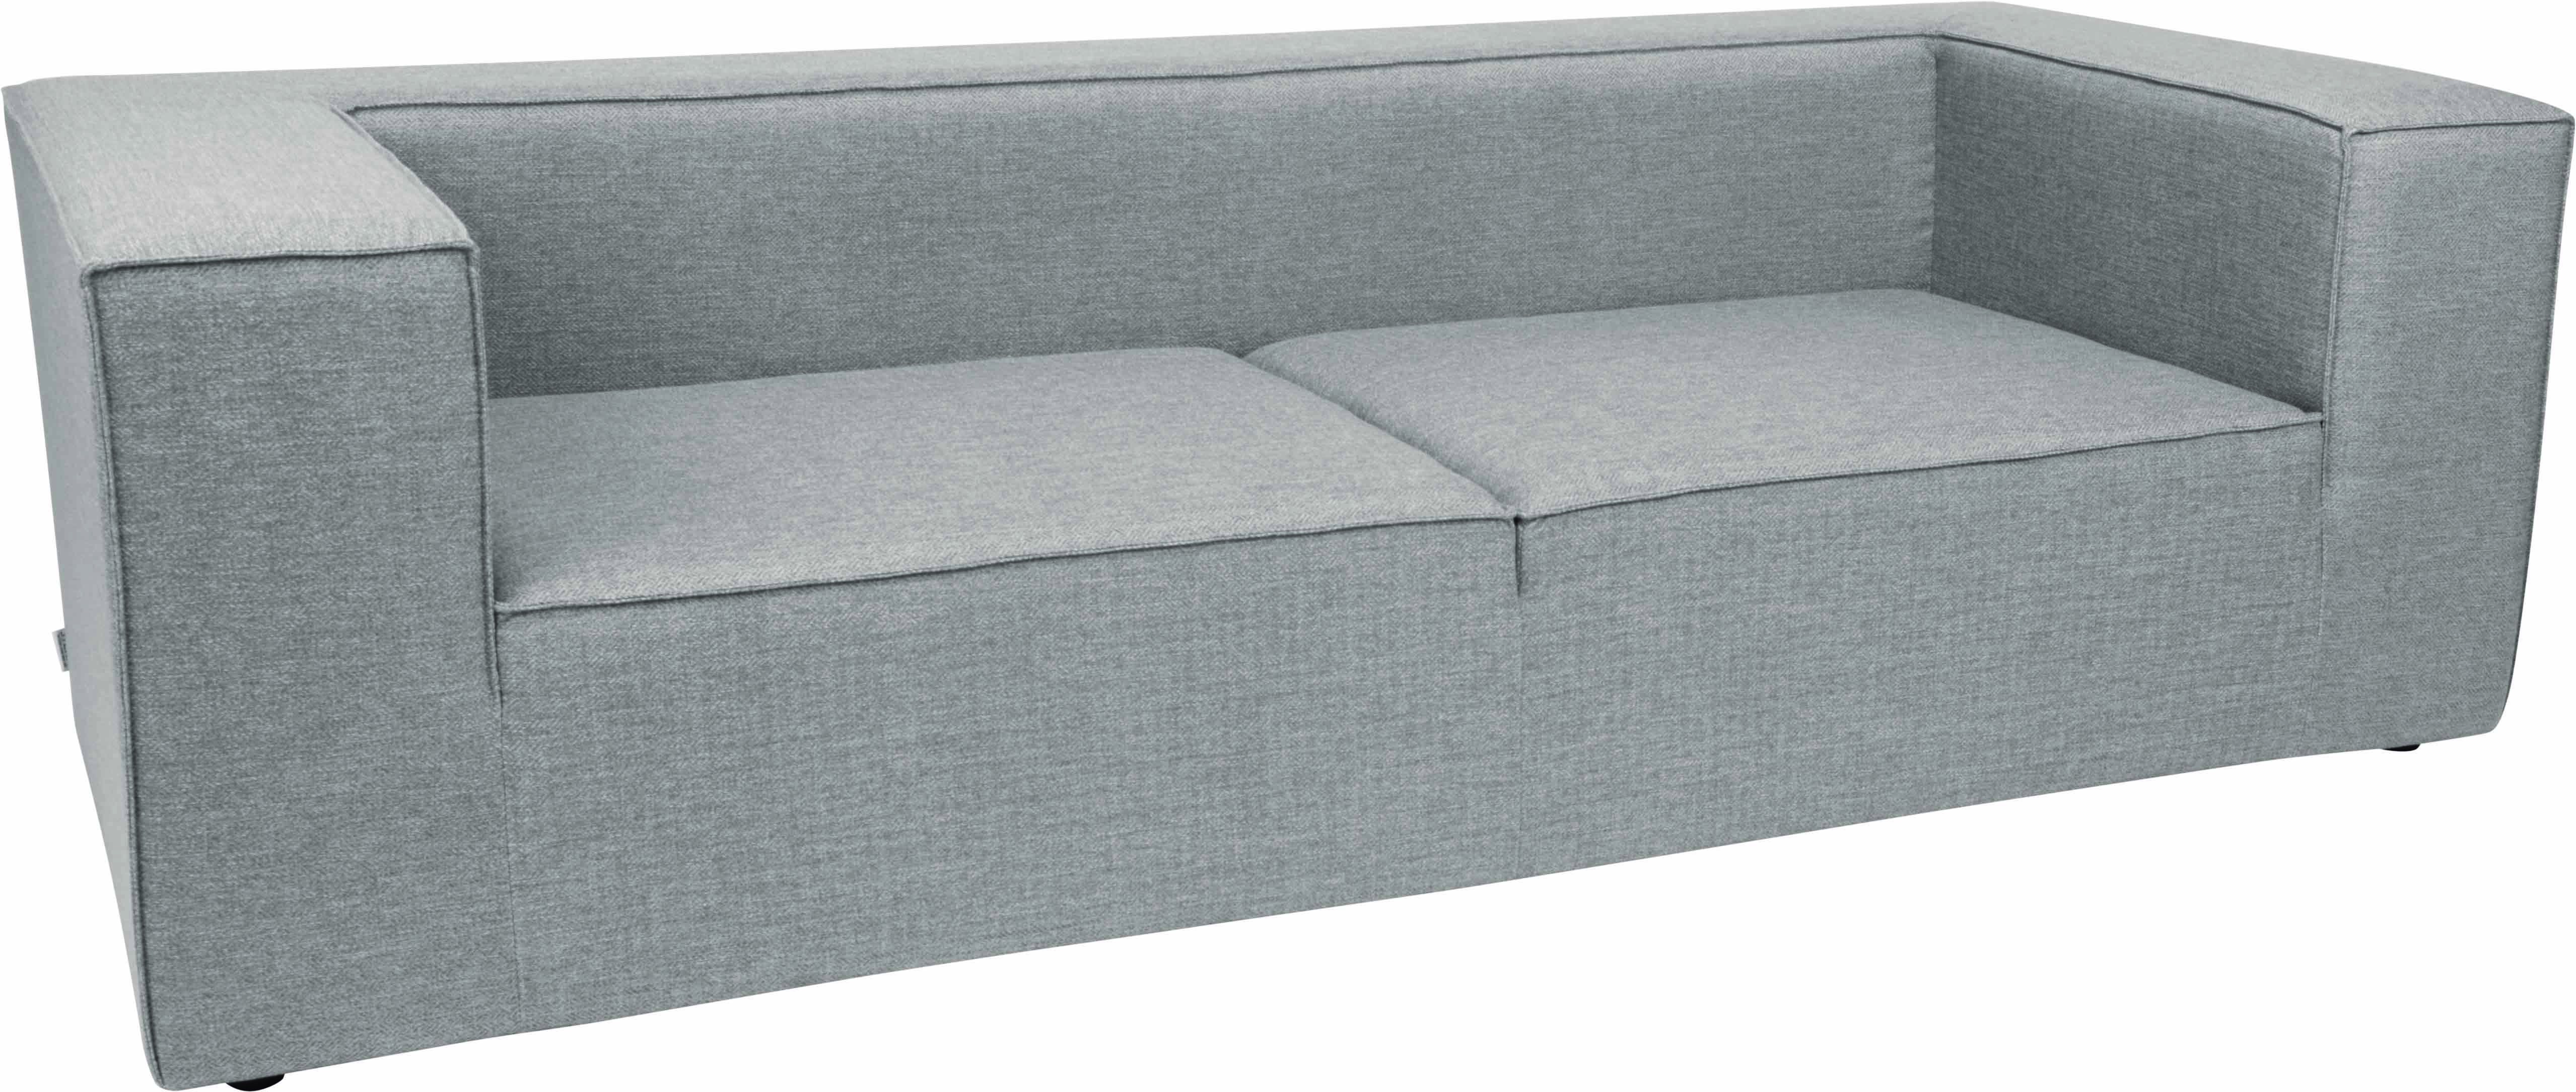 Anspruchsvoll Sofa Modern Beste Wahl Adele Sectional Transitional Contemporary Grey Outdoor European